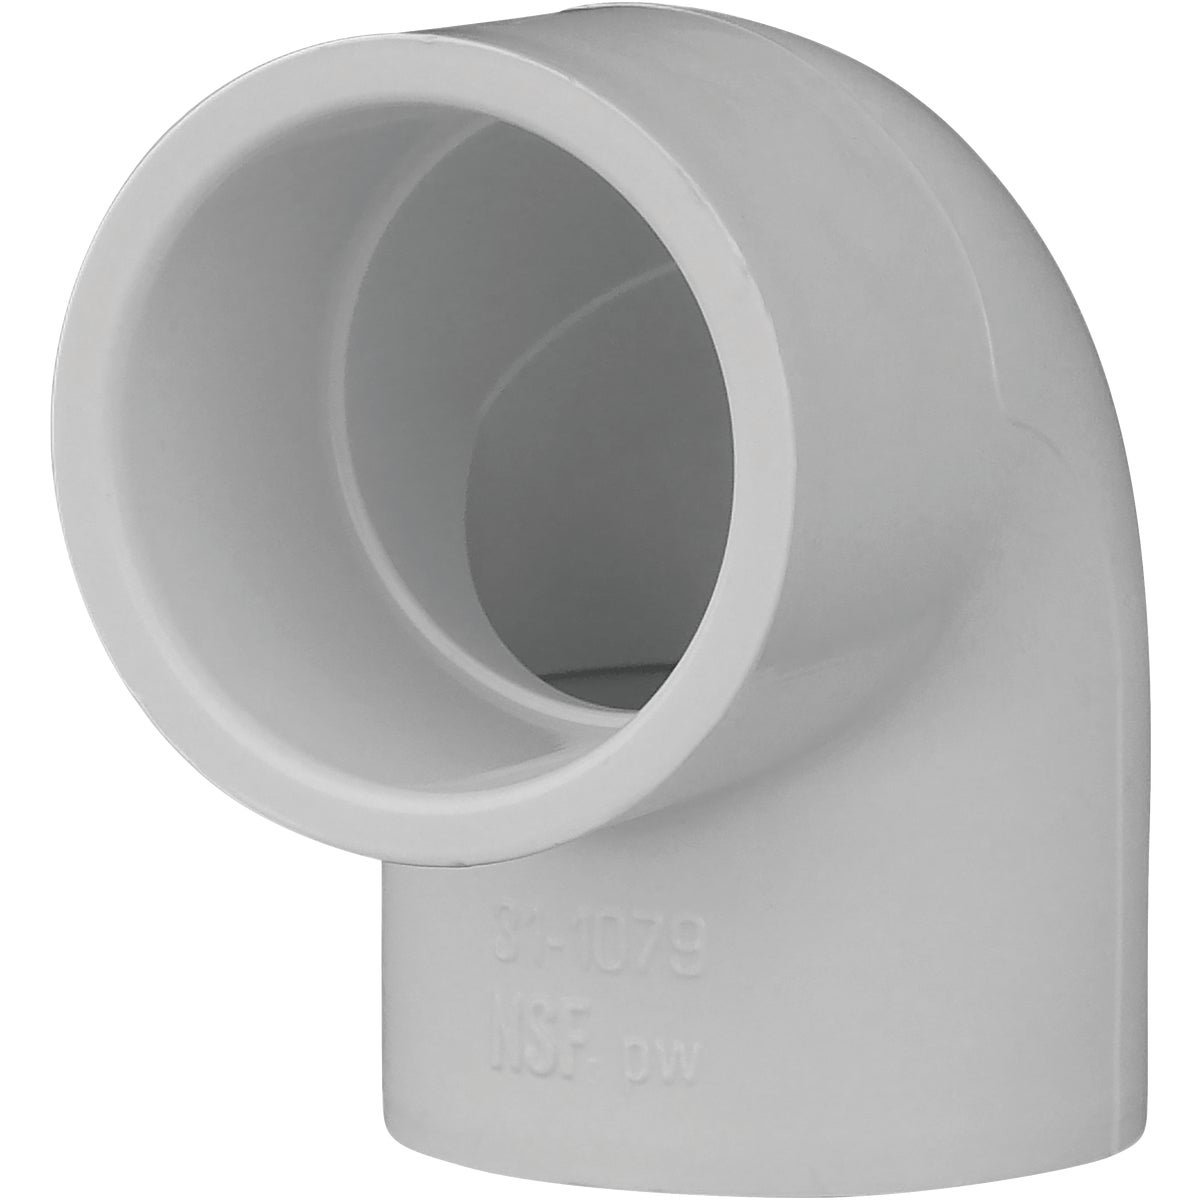 "10PK 1"" 90D SCH40 ELBOW - 30710CP by Genova Inc"